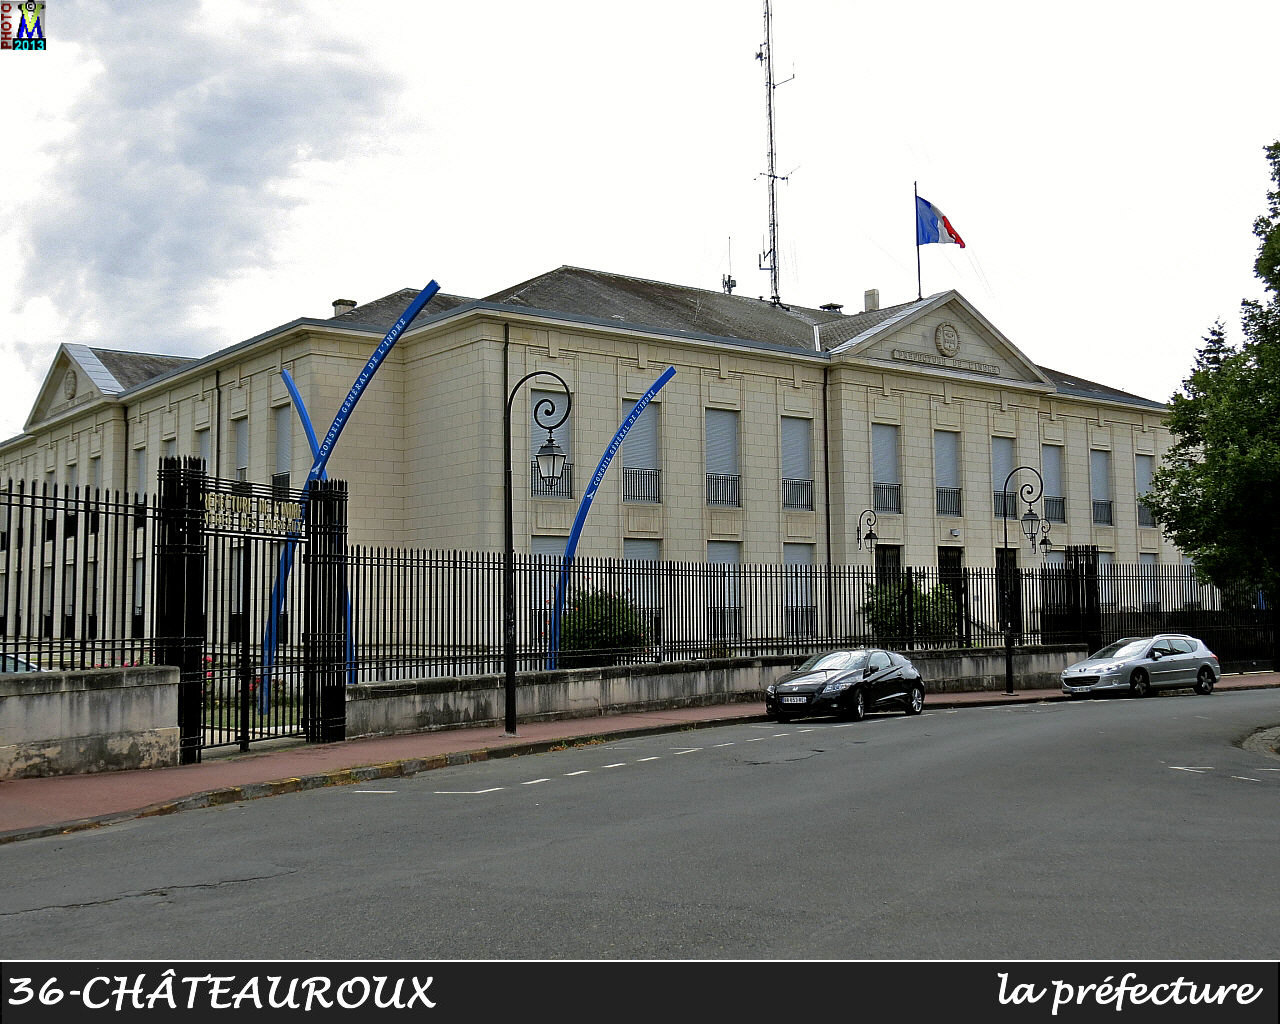 36CHATEAUROUX_prefecture_102.jpg